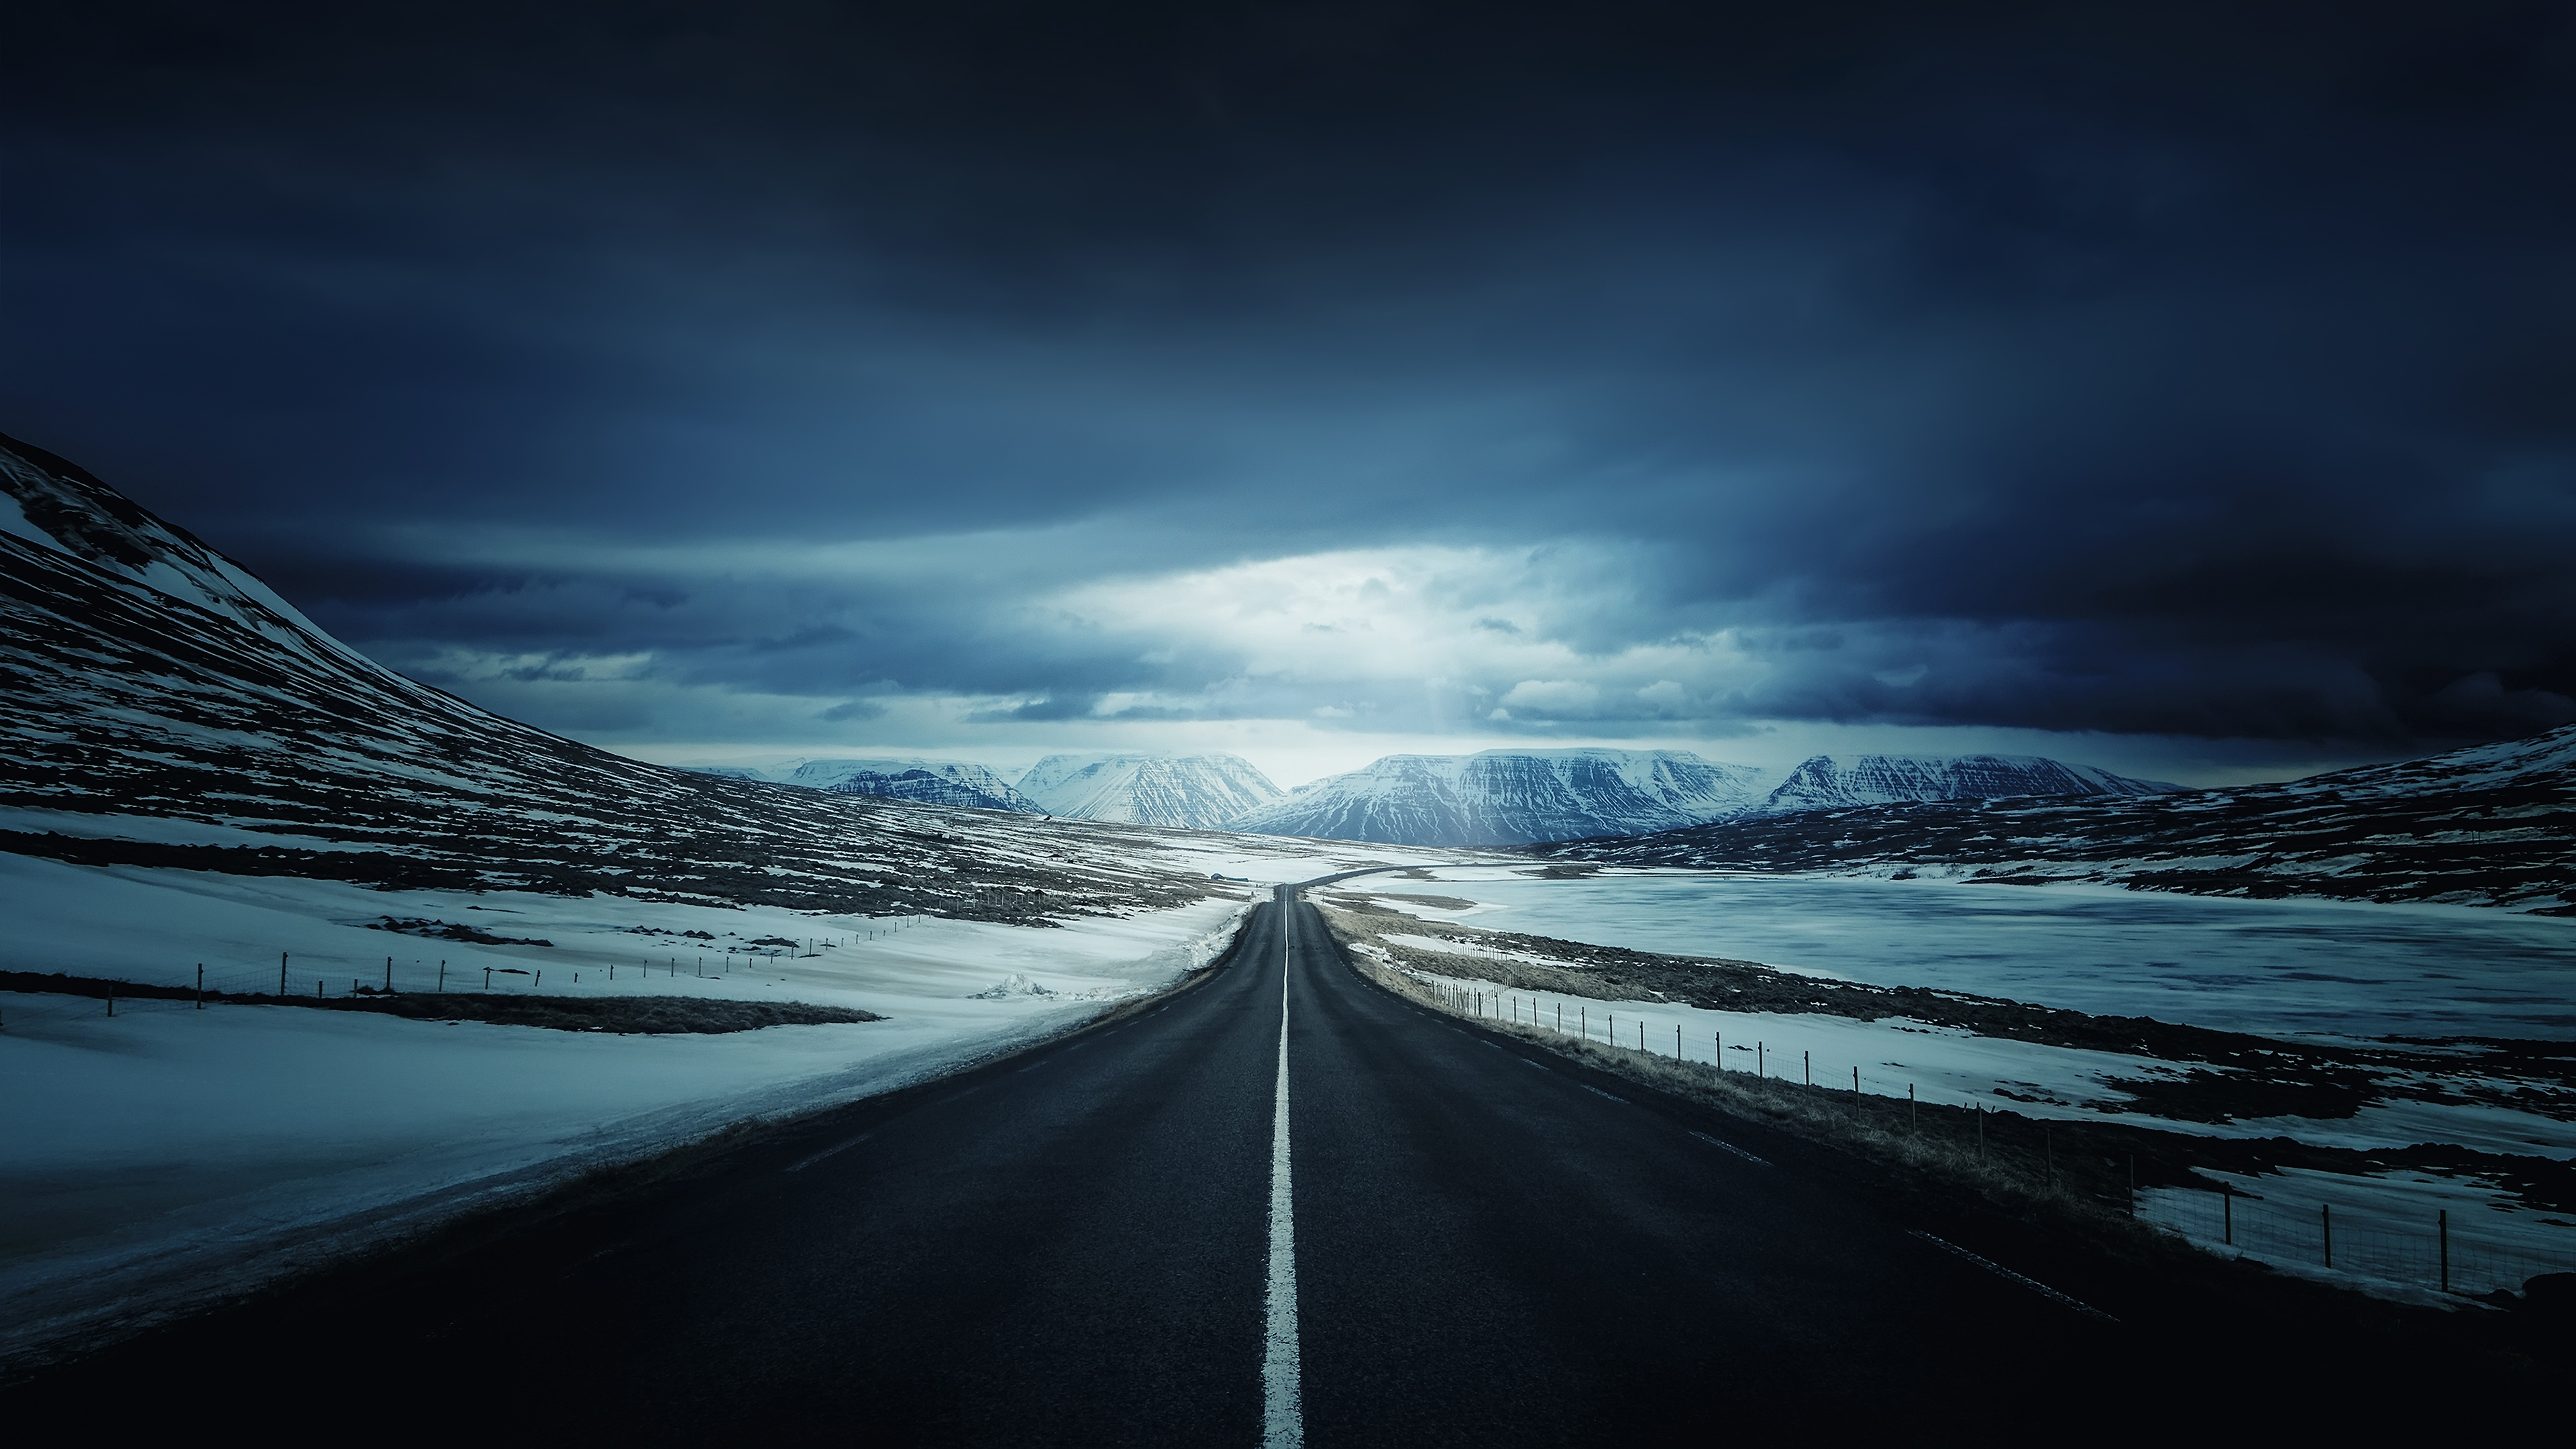 Landscape Road 4k Ultra HD Wallpaper And Background Image